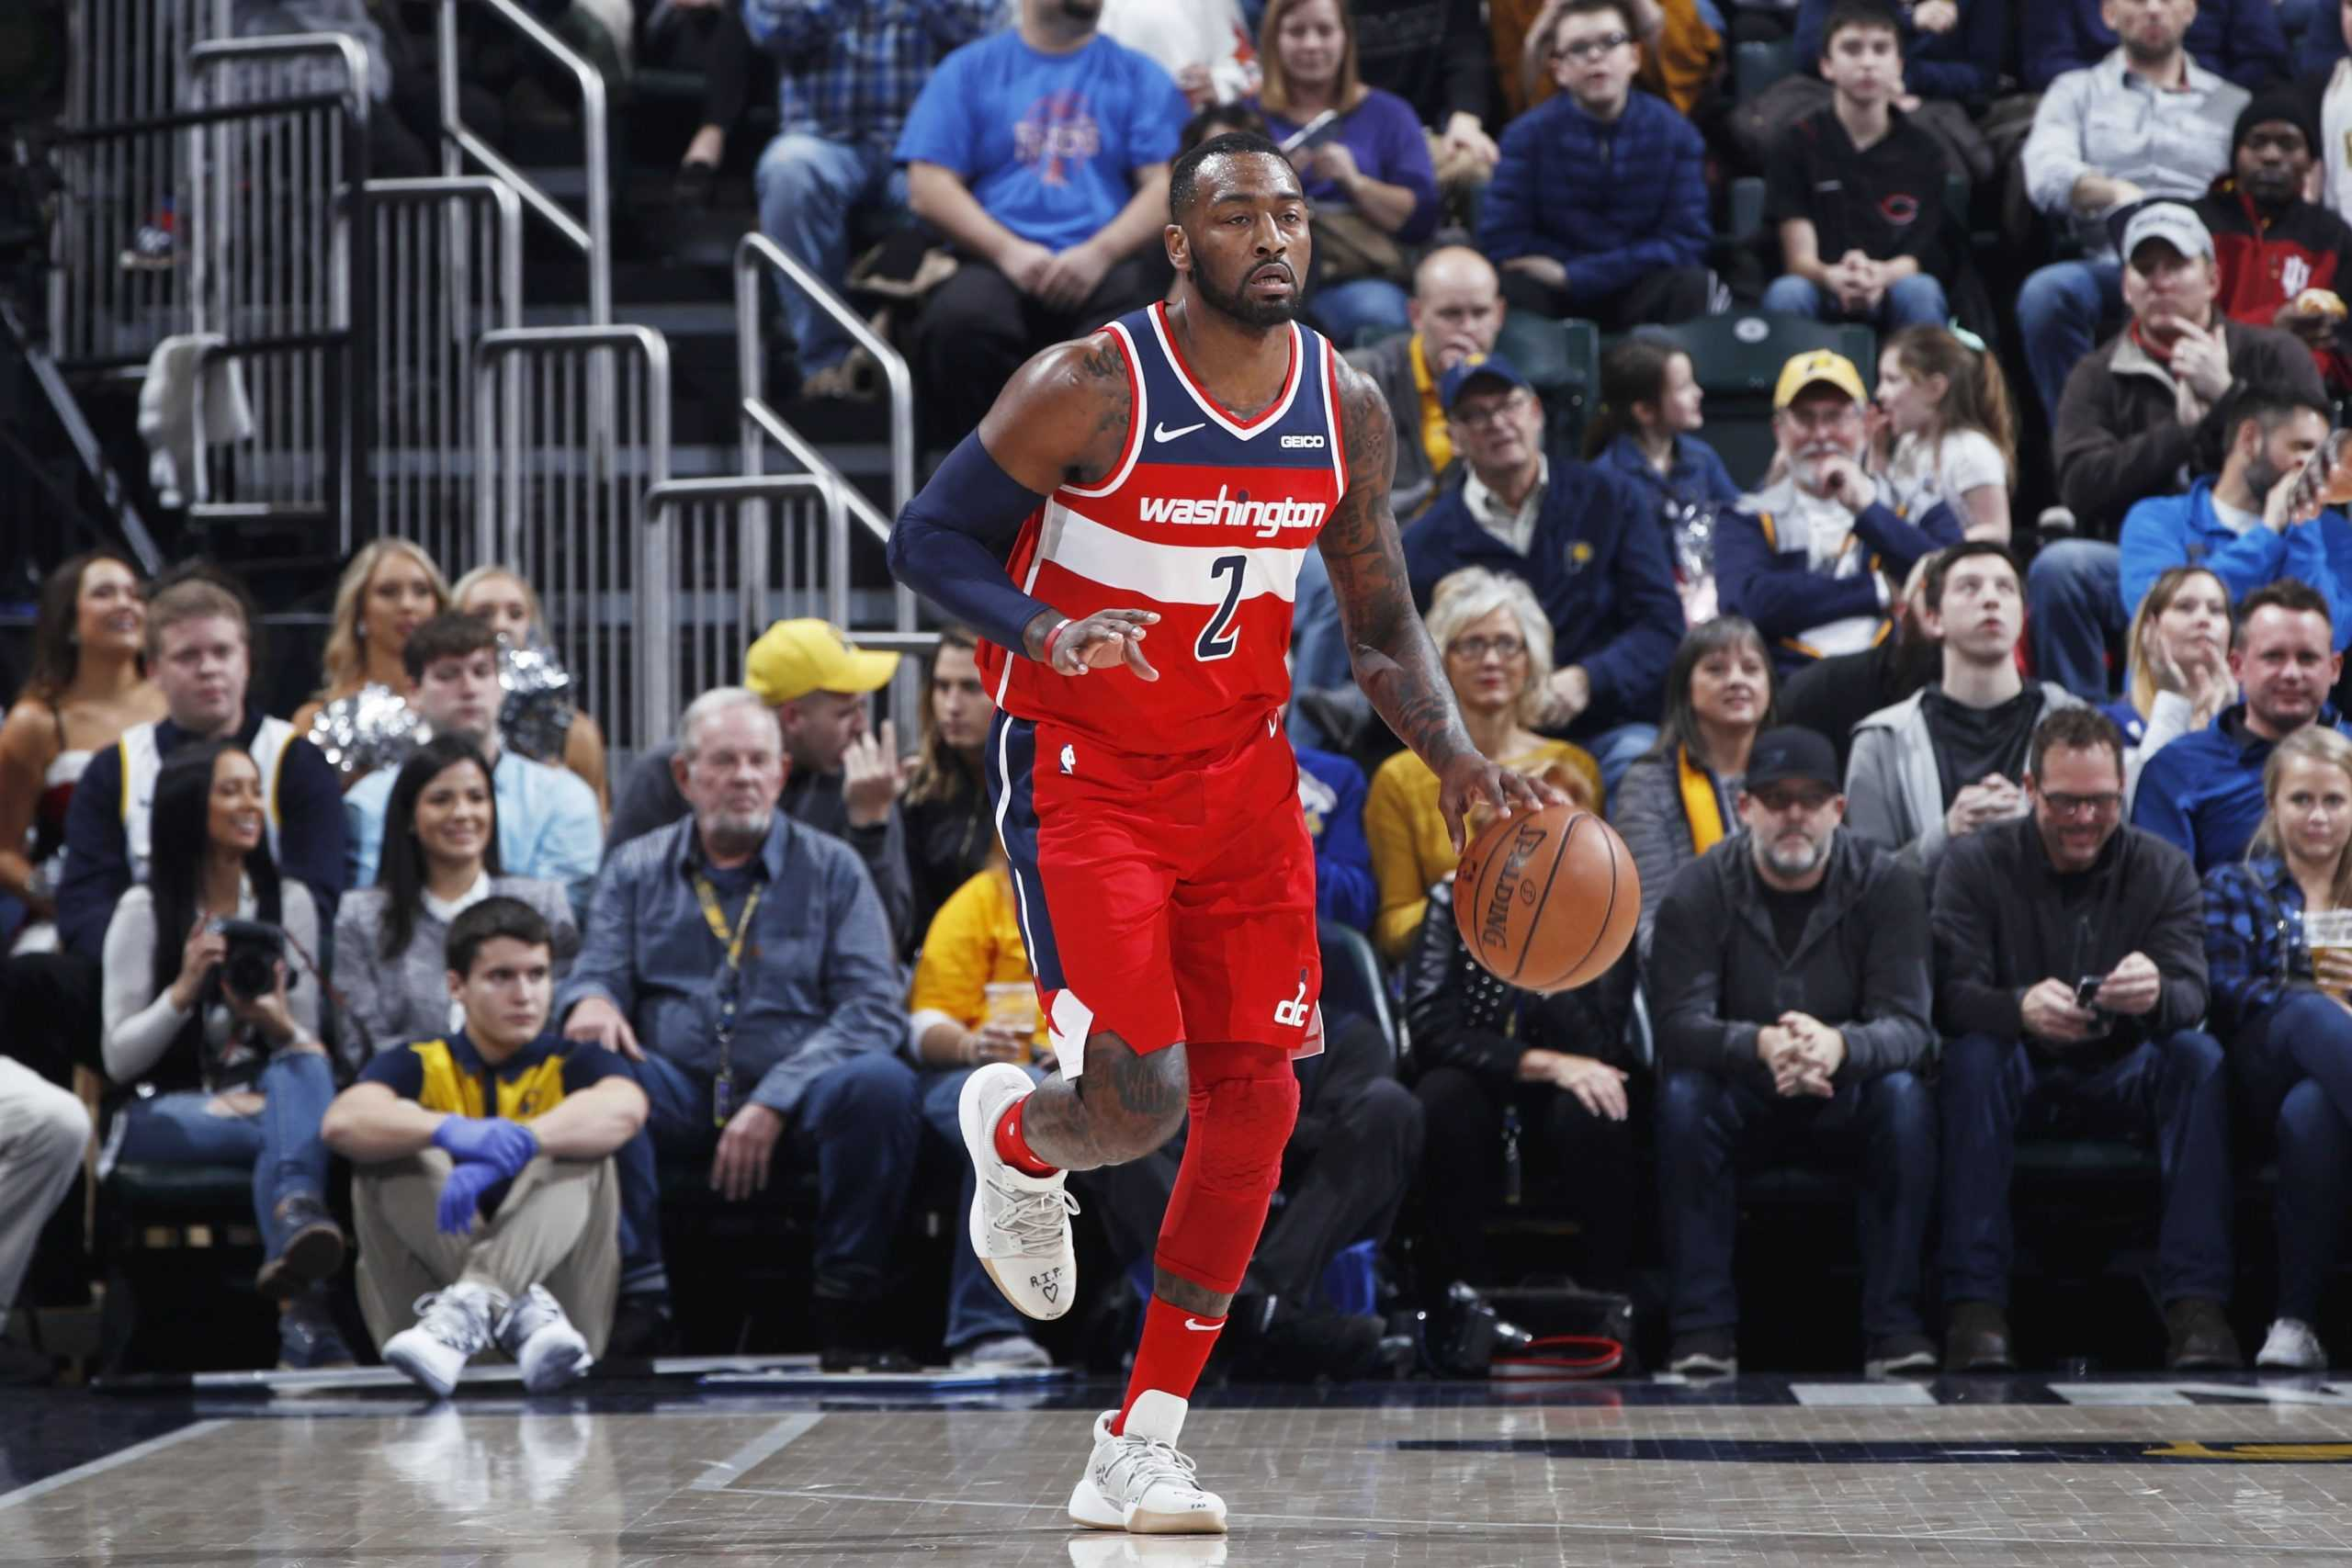 Wizards Face Challenges Fulfilling a John Wall Trade Demand